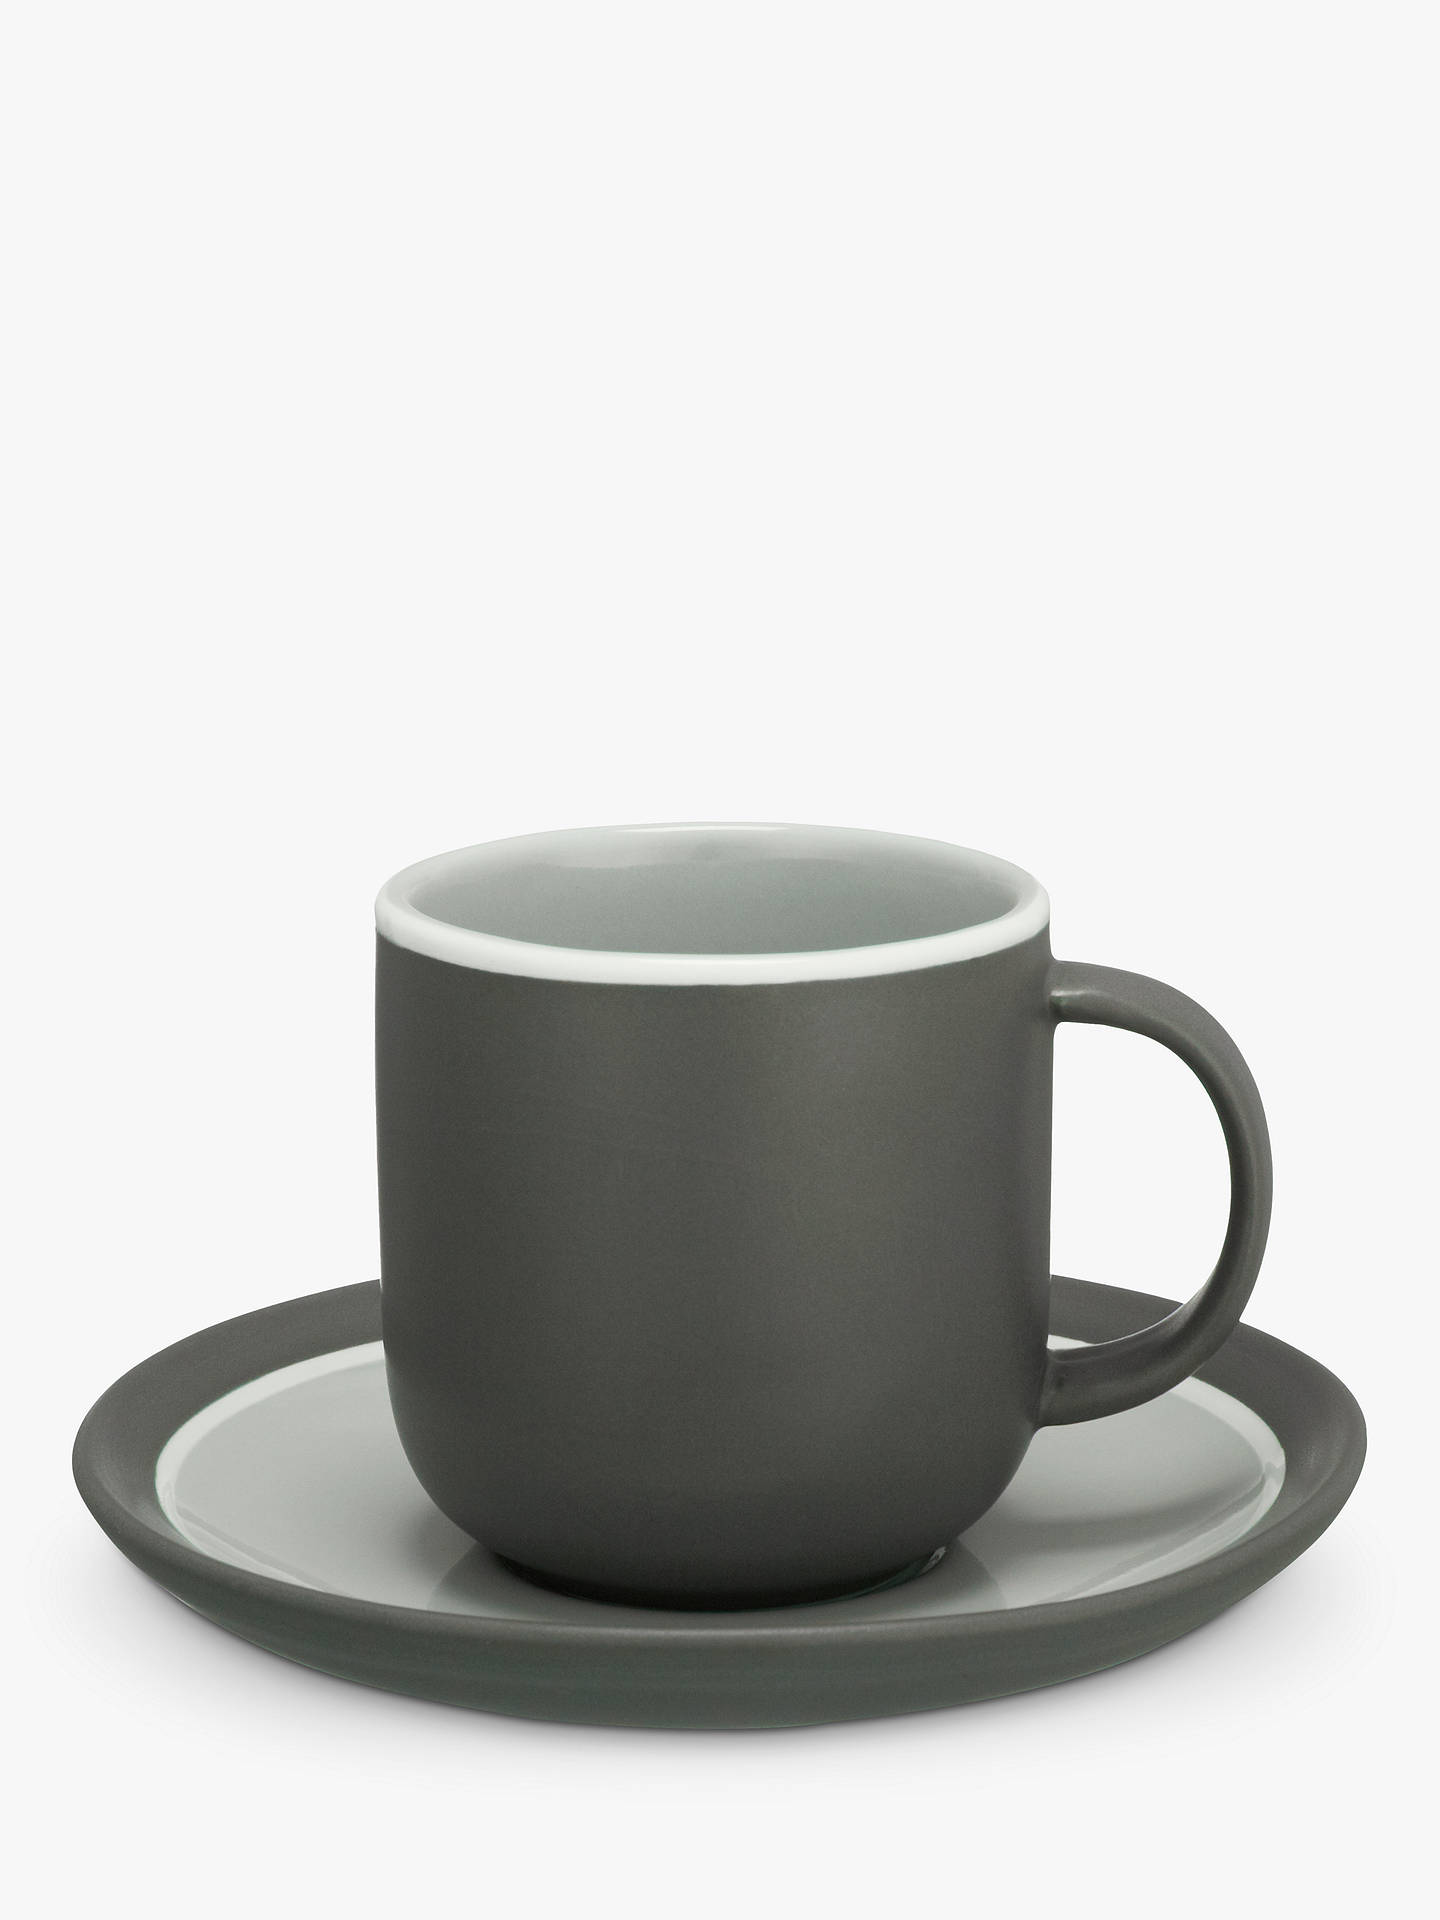 Buy John Lewis & Partners Puritan Curved Espresso Cup & Saucer, Grey Online at johnlewis.com